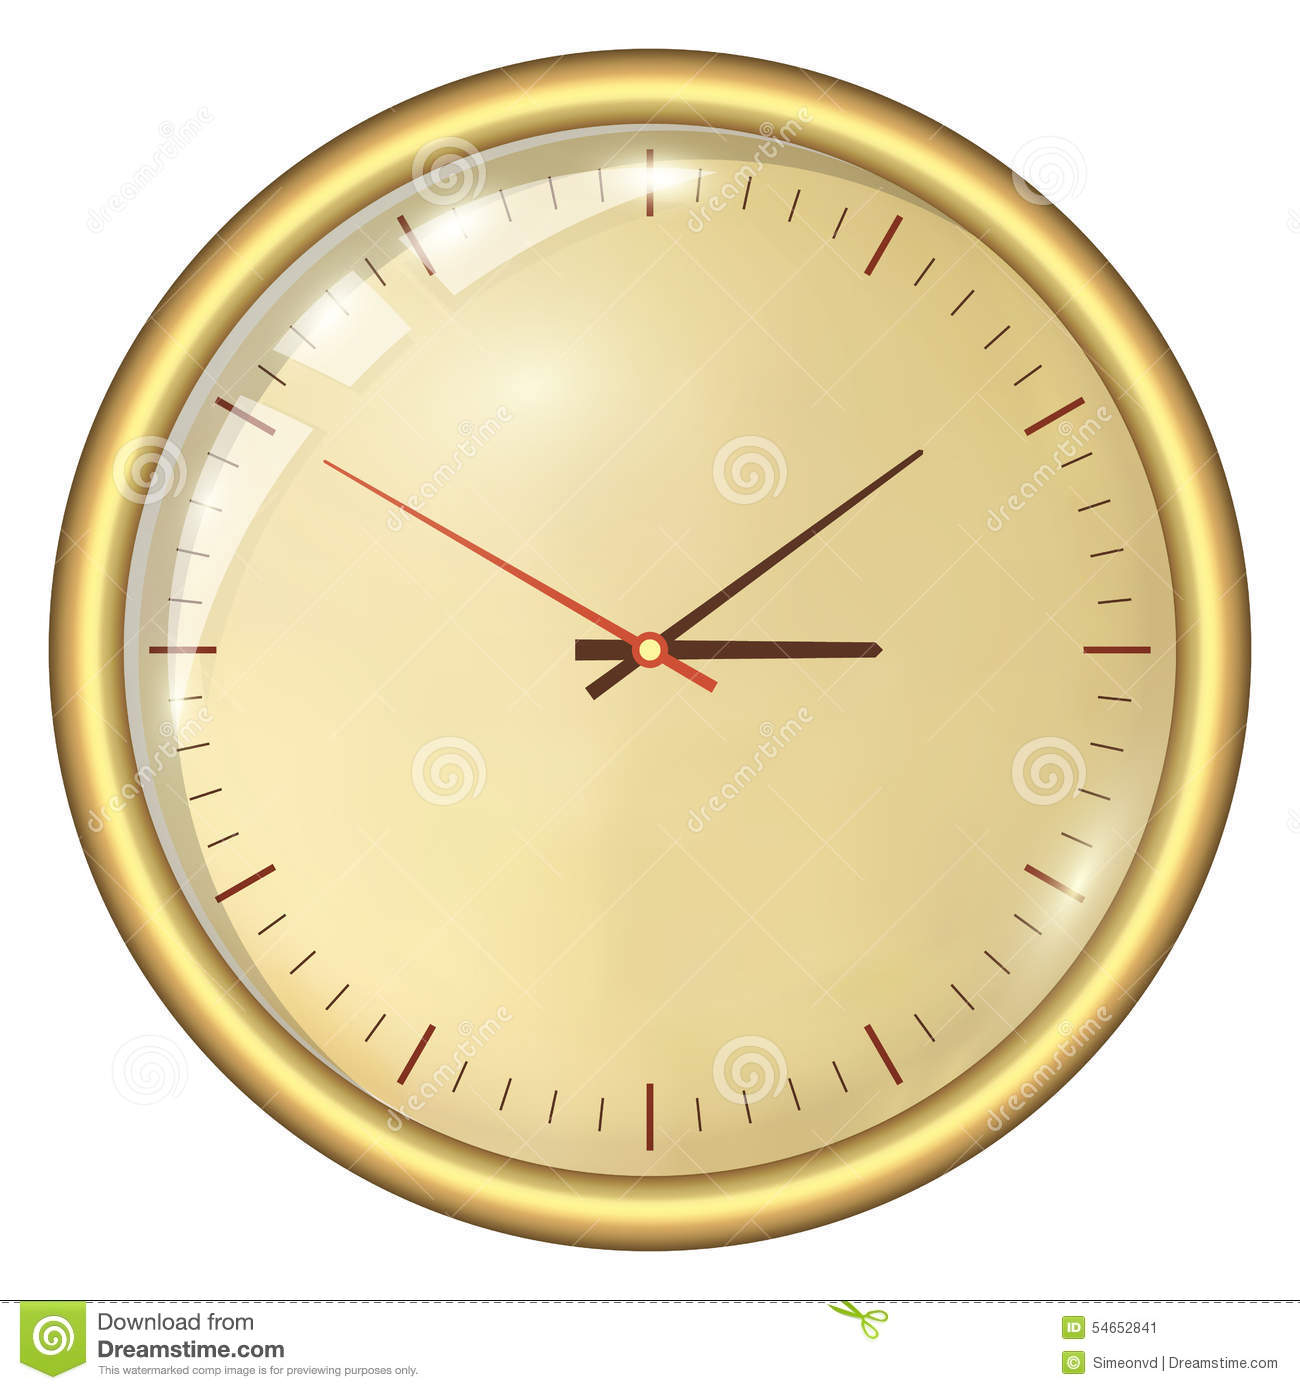 Analog Clock Stock Image Image Of Lunch Second Seconds 54652841